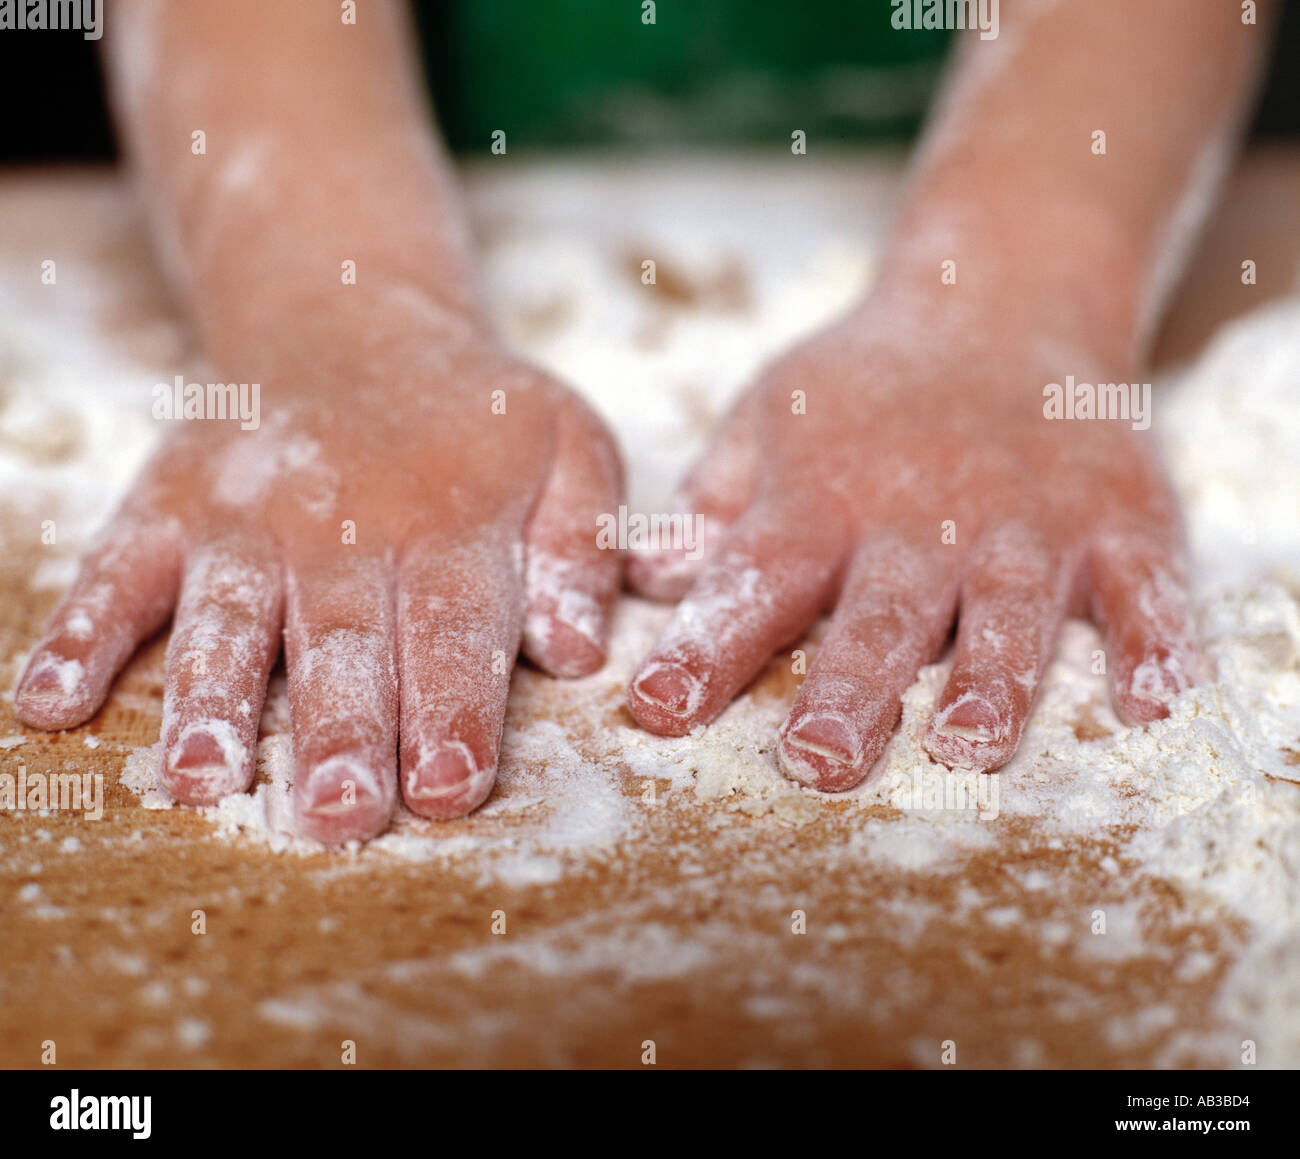 childs hands in flour cooking - Stock Image